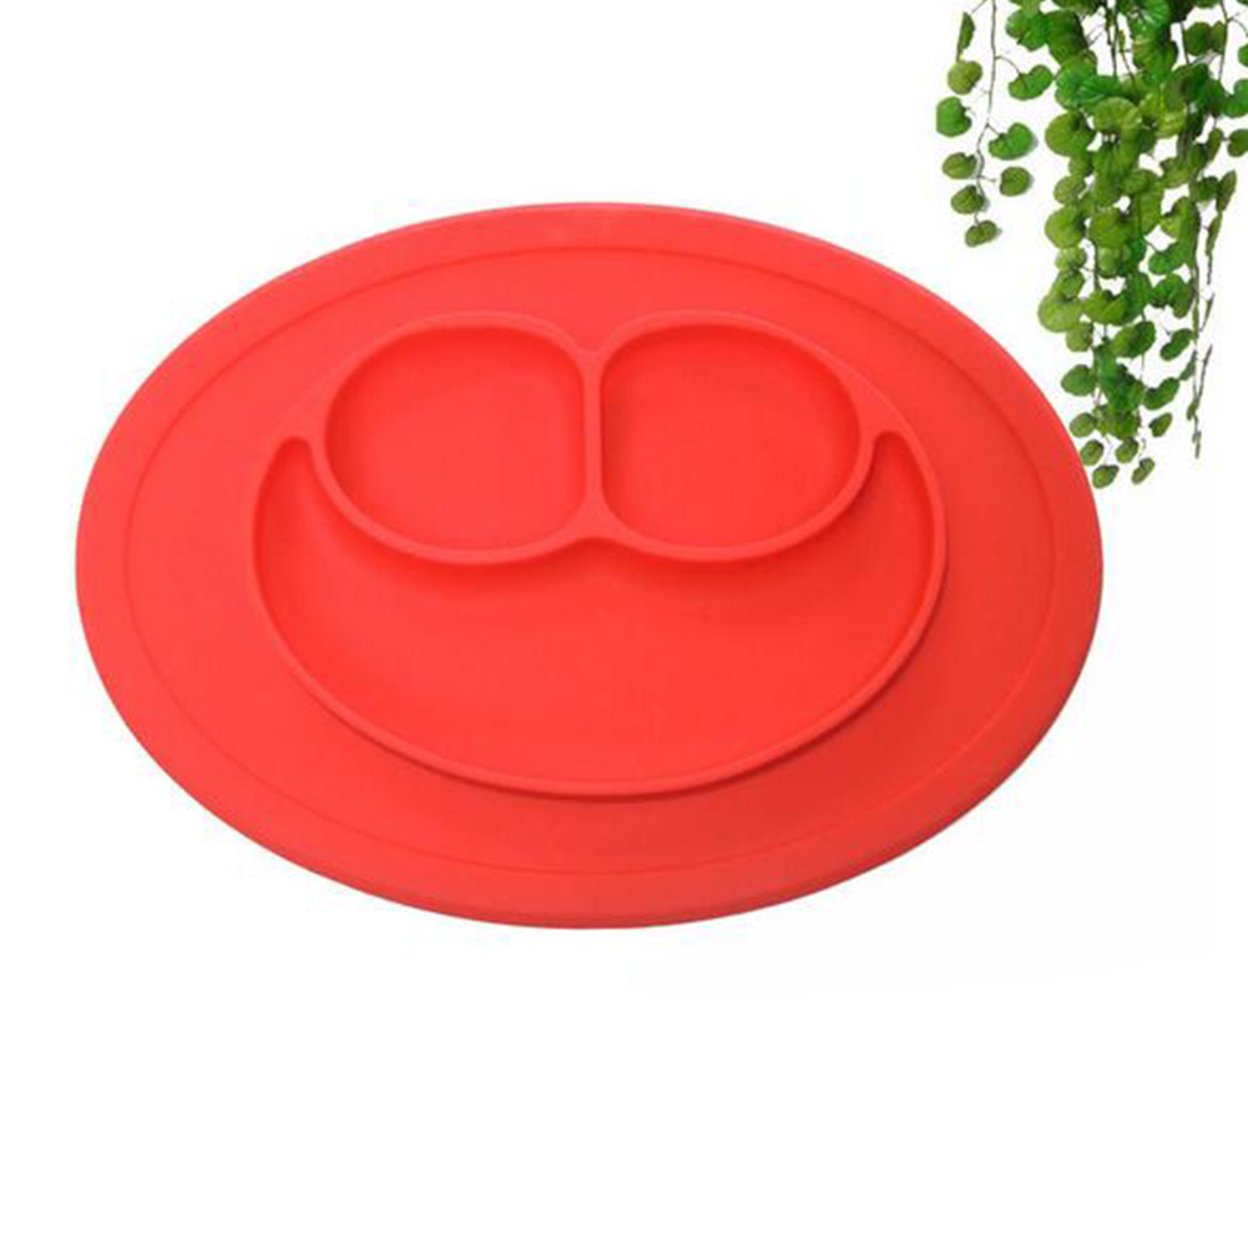 Red Smile Shape Round Baby Silicone Suction Table Food Tray Placemat Bowl Plate 59c4be3be2246139b27948f5